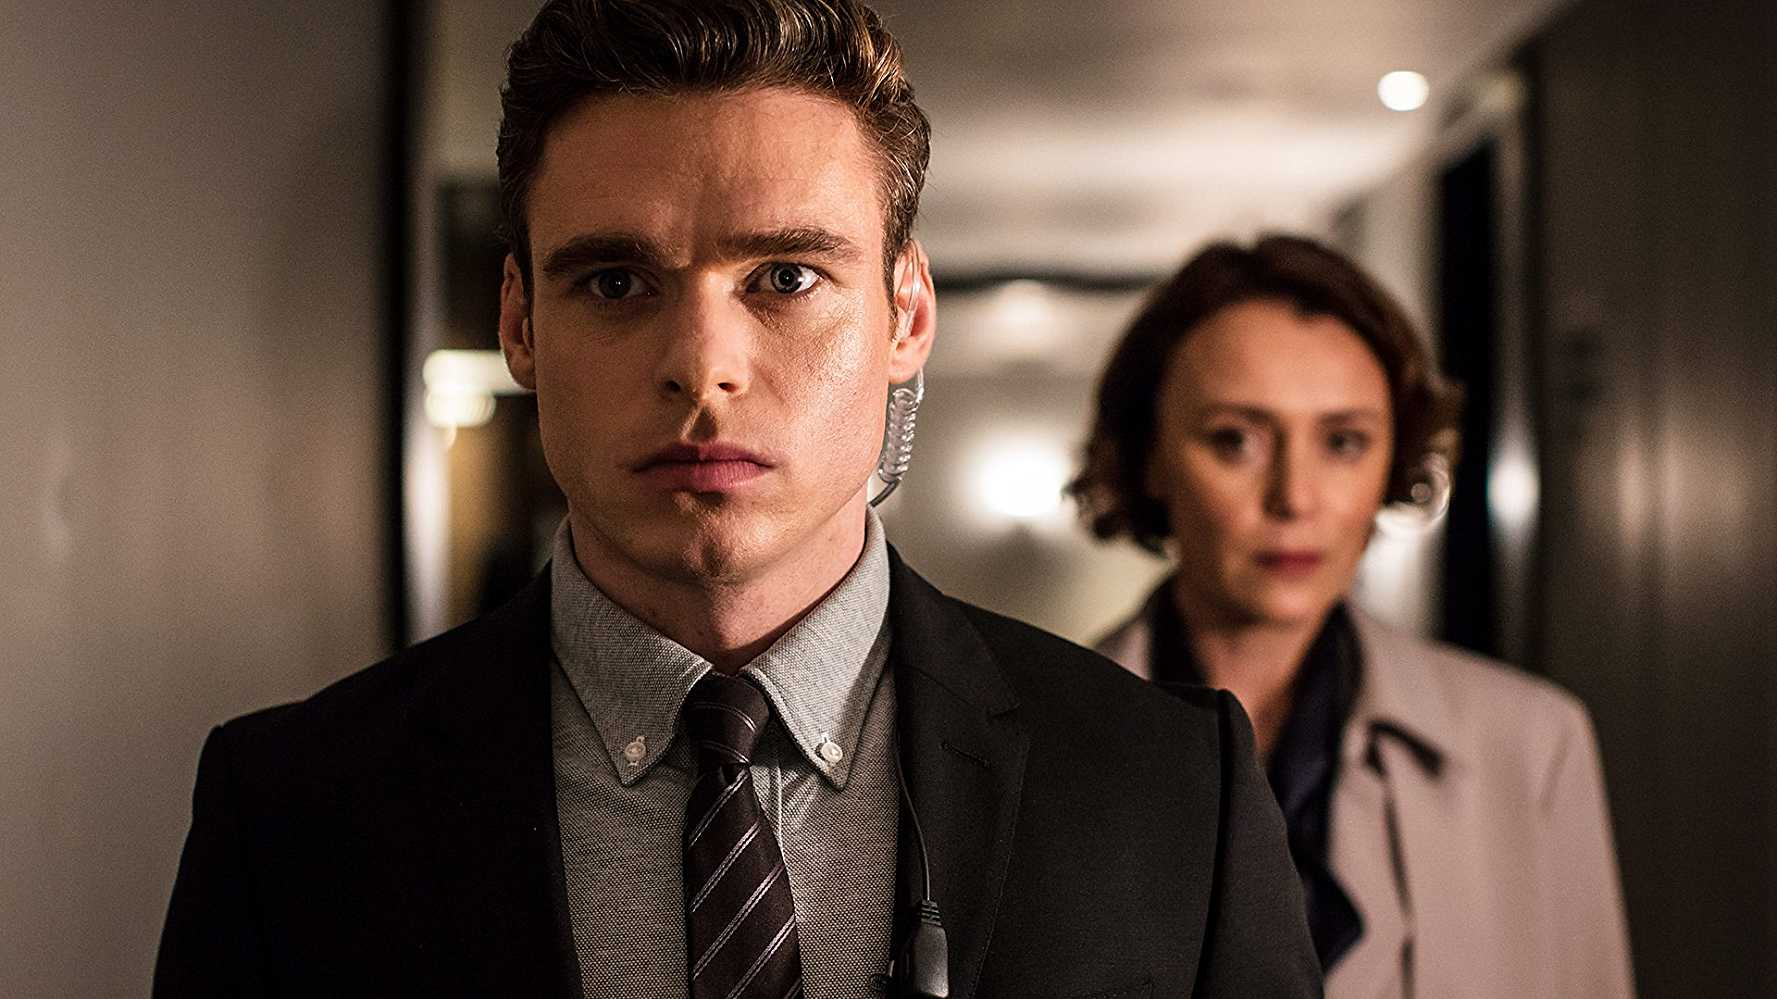 'Bodyguard' drew an audience of almost 10.4 million viewers. (IMDb)